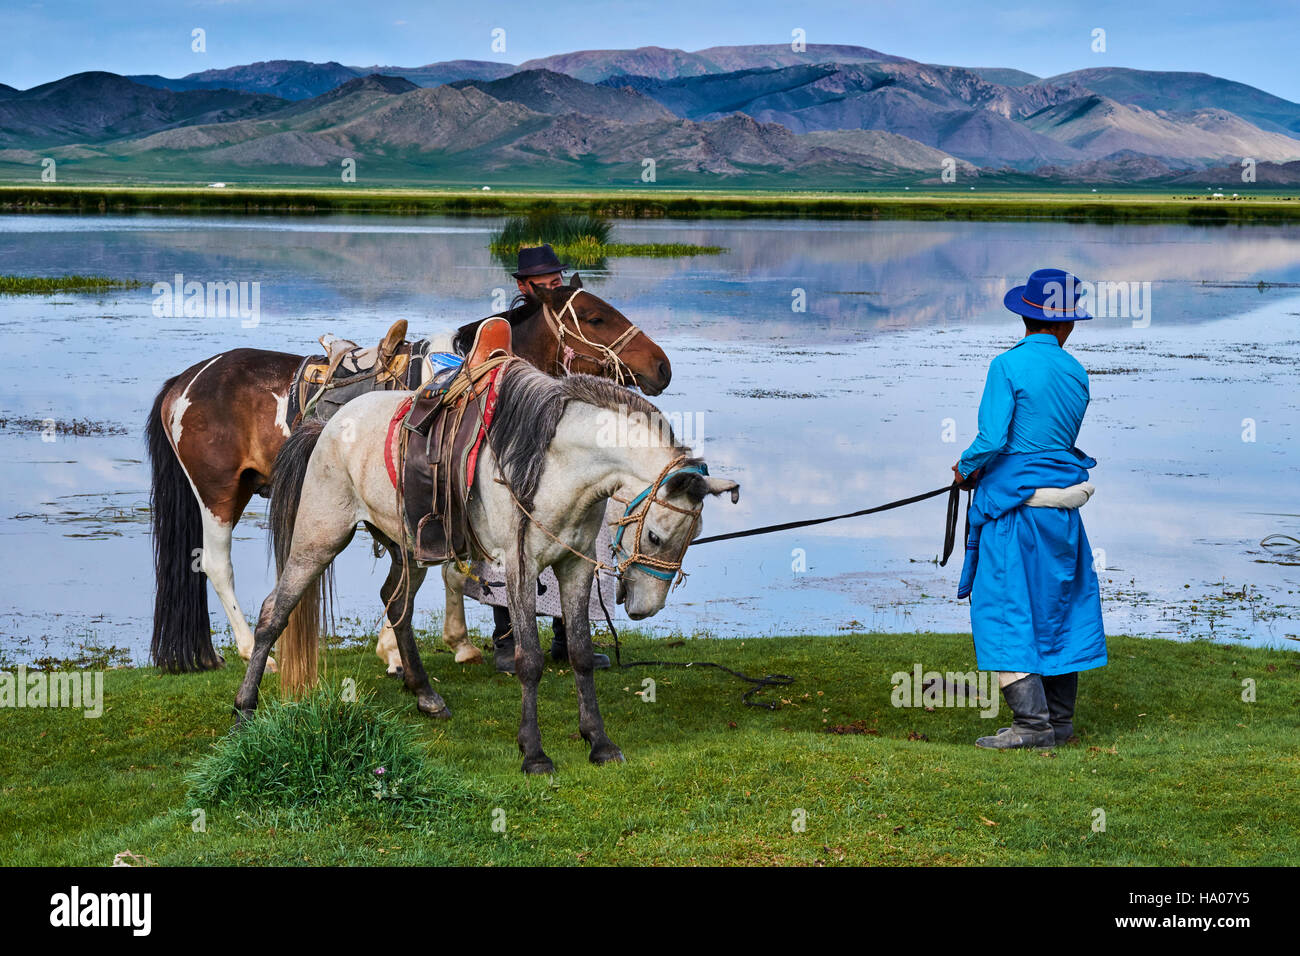 Mongolia, Bayankhongor province, Naadam, traditional festival, young nomad near a lake - Stock Image